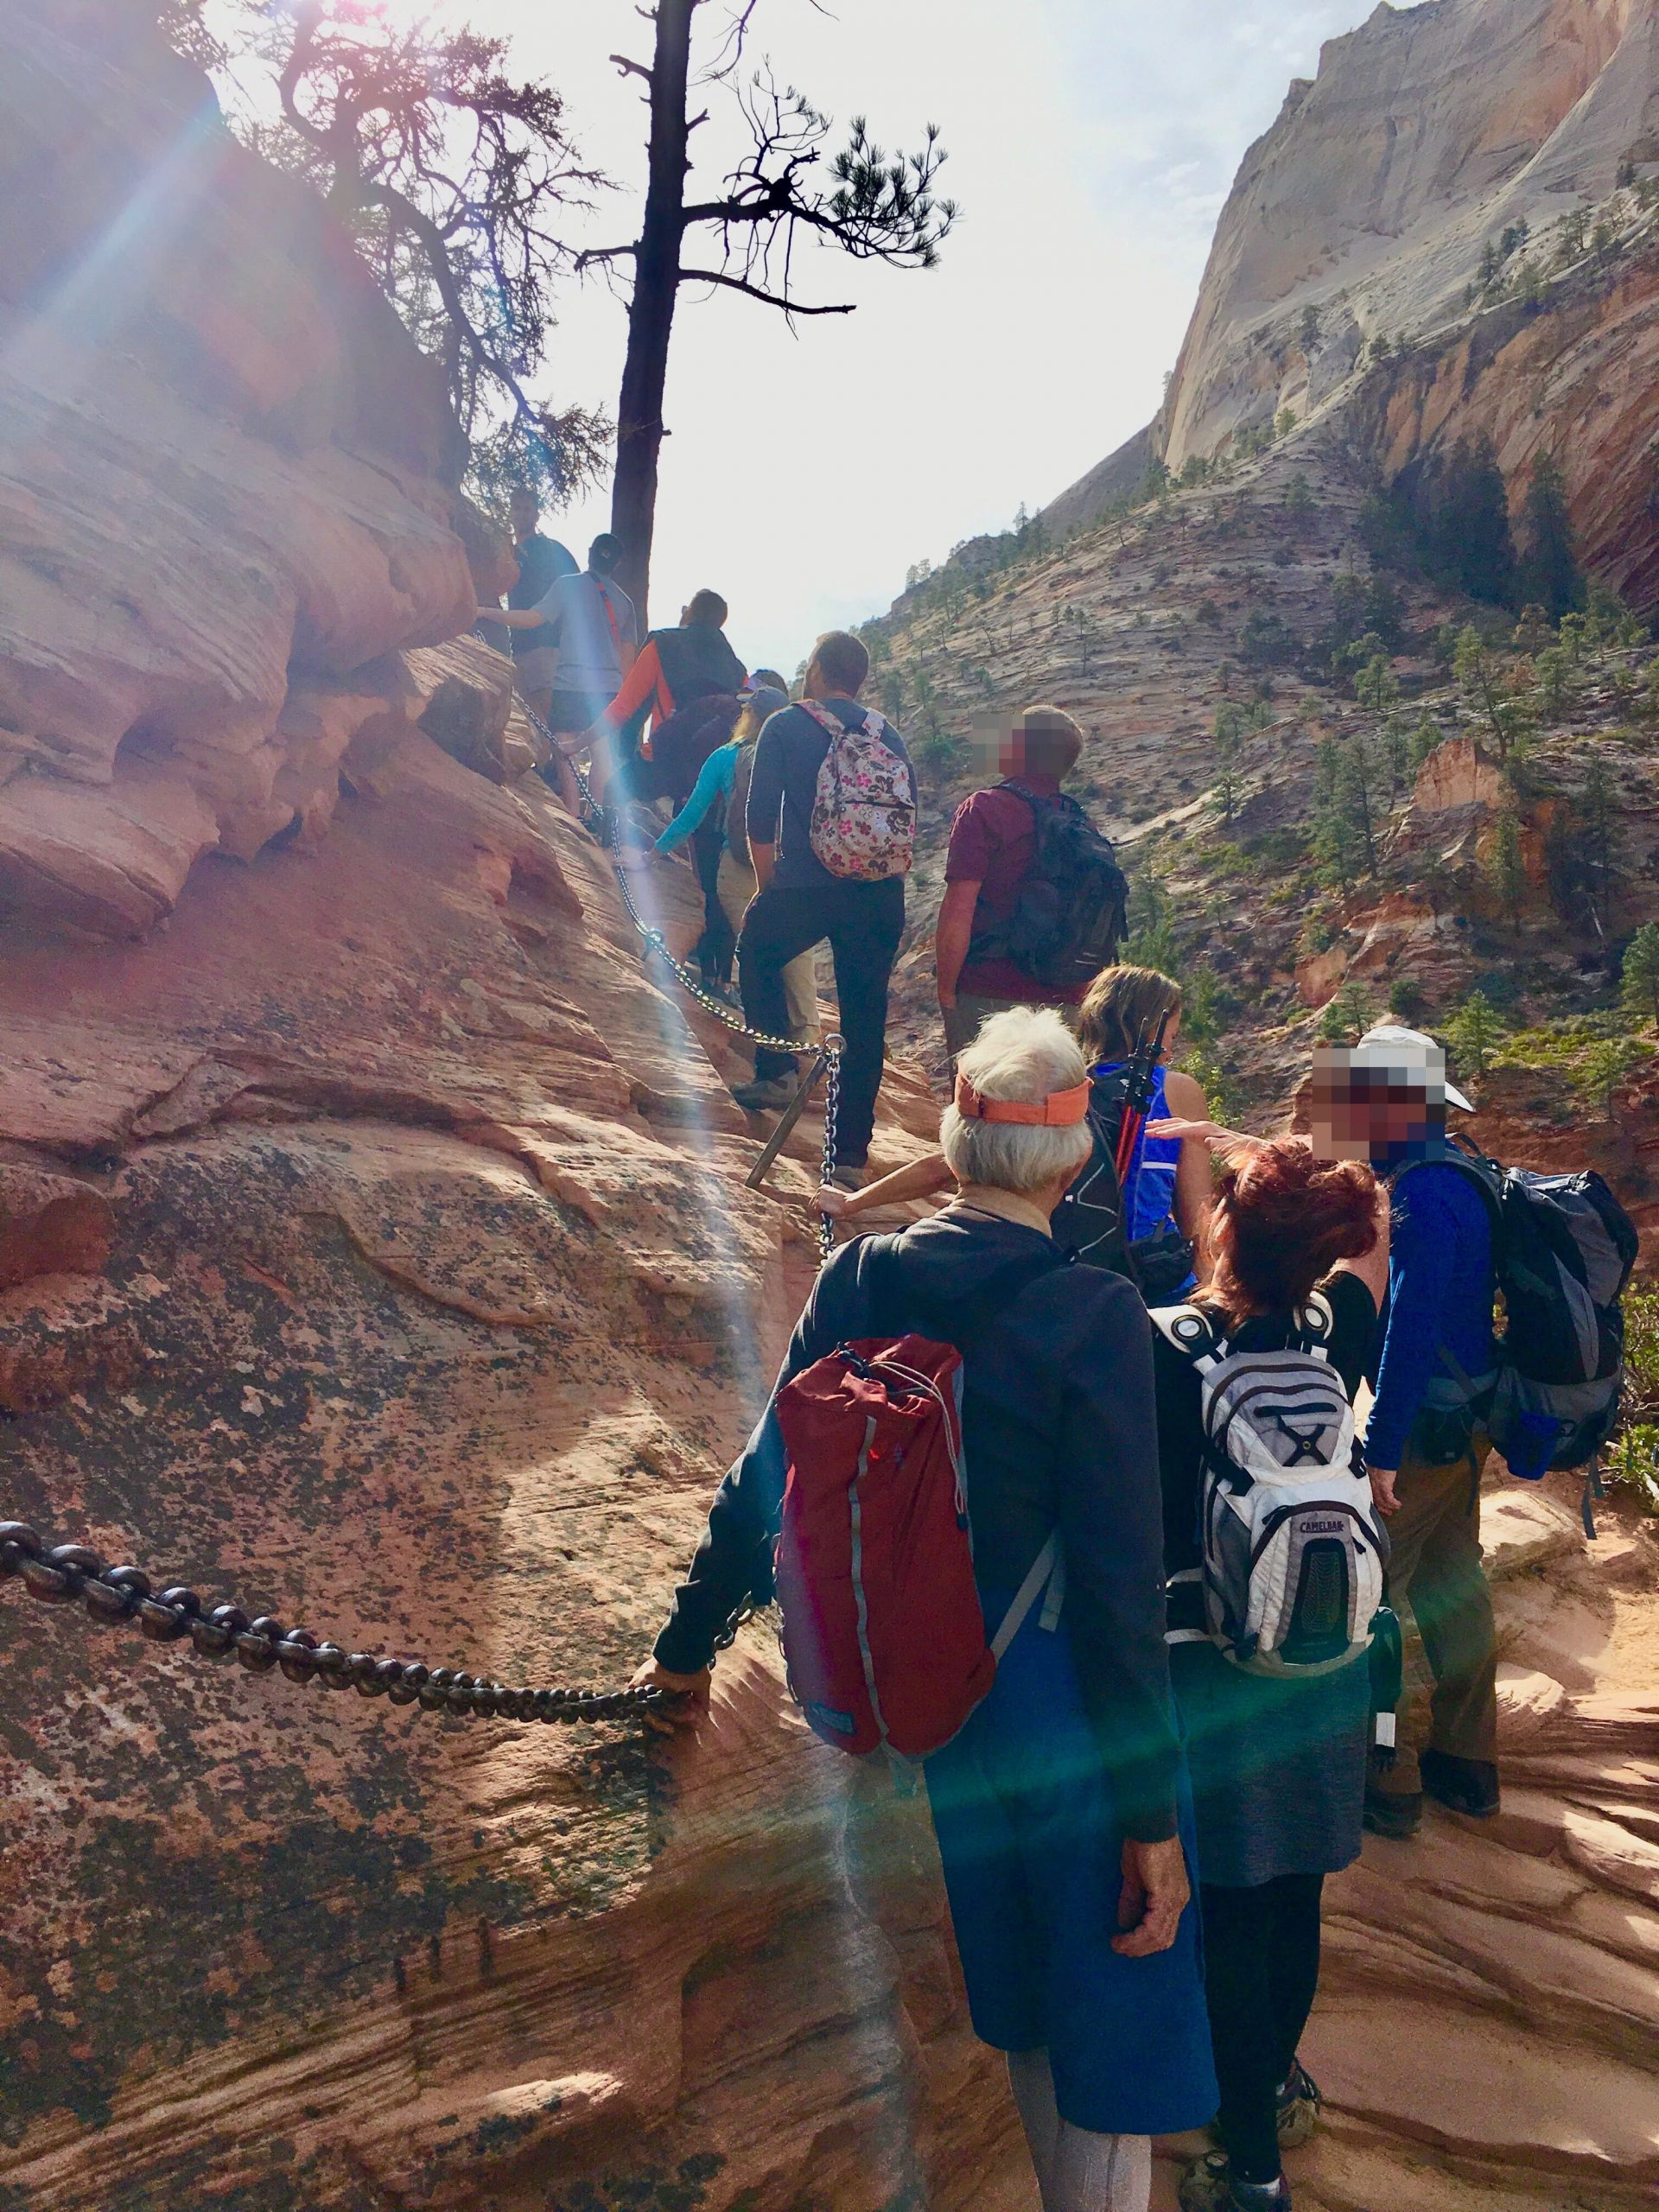 Crowds on Angels Landing Trail at Zion National Park